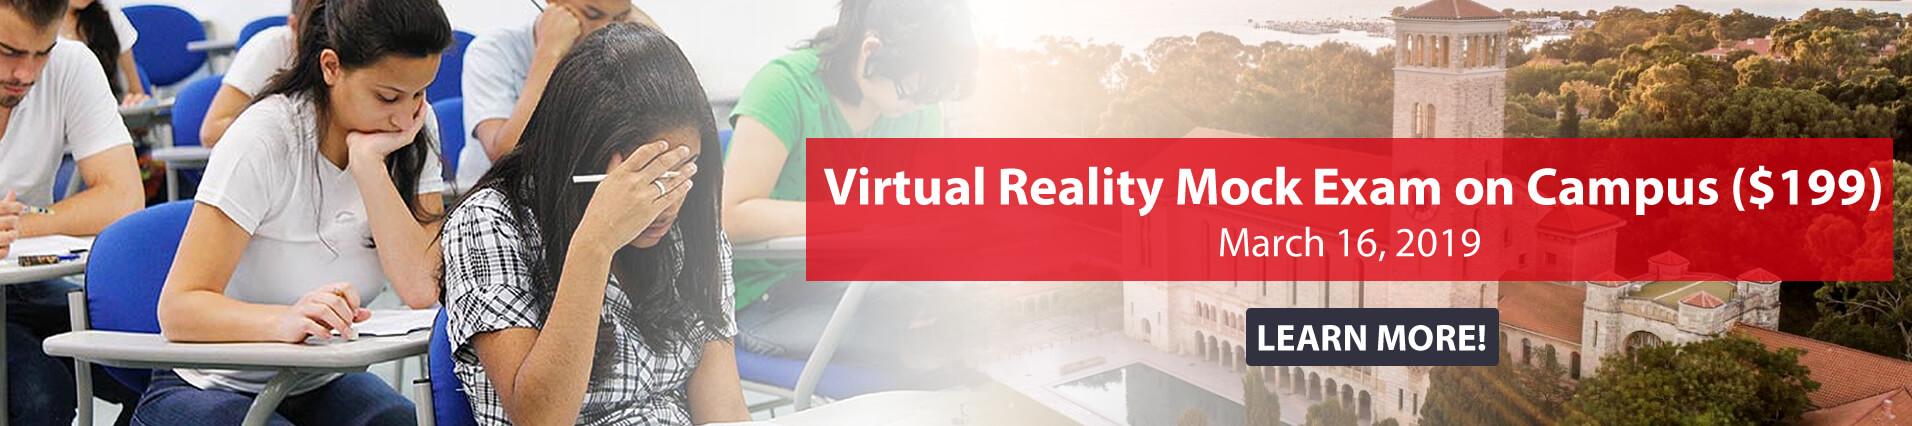 Virtual Reality Mock Exam on Campus